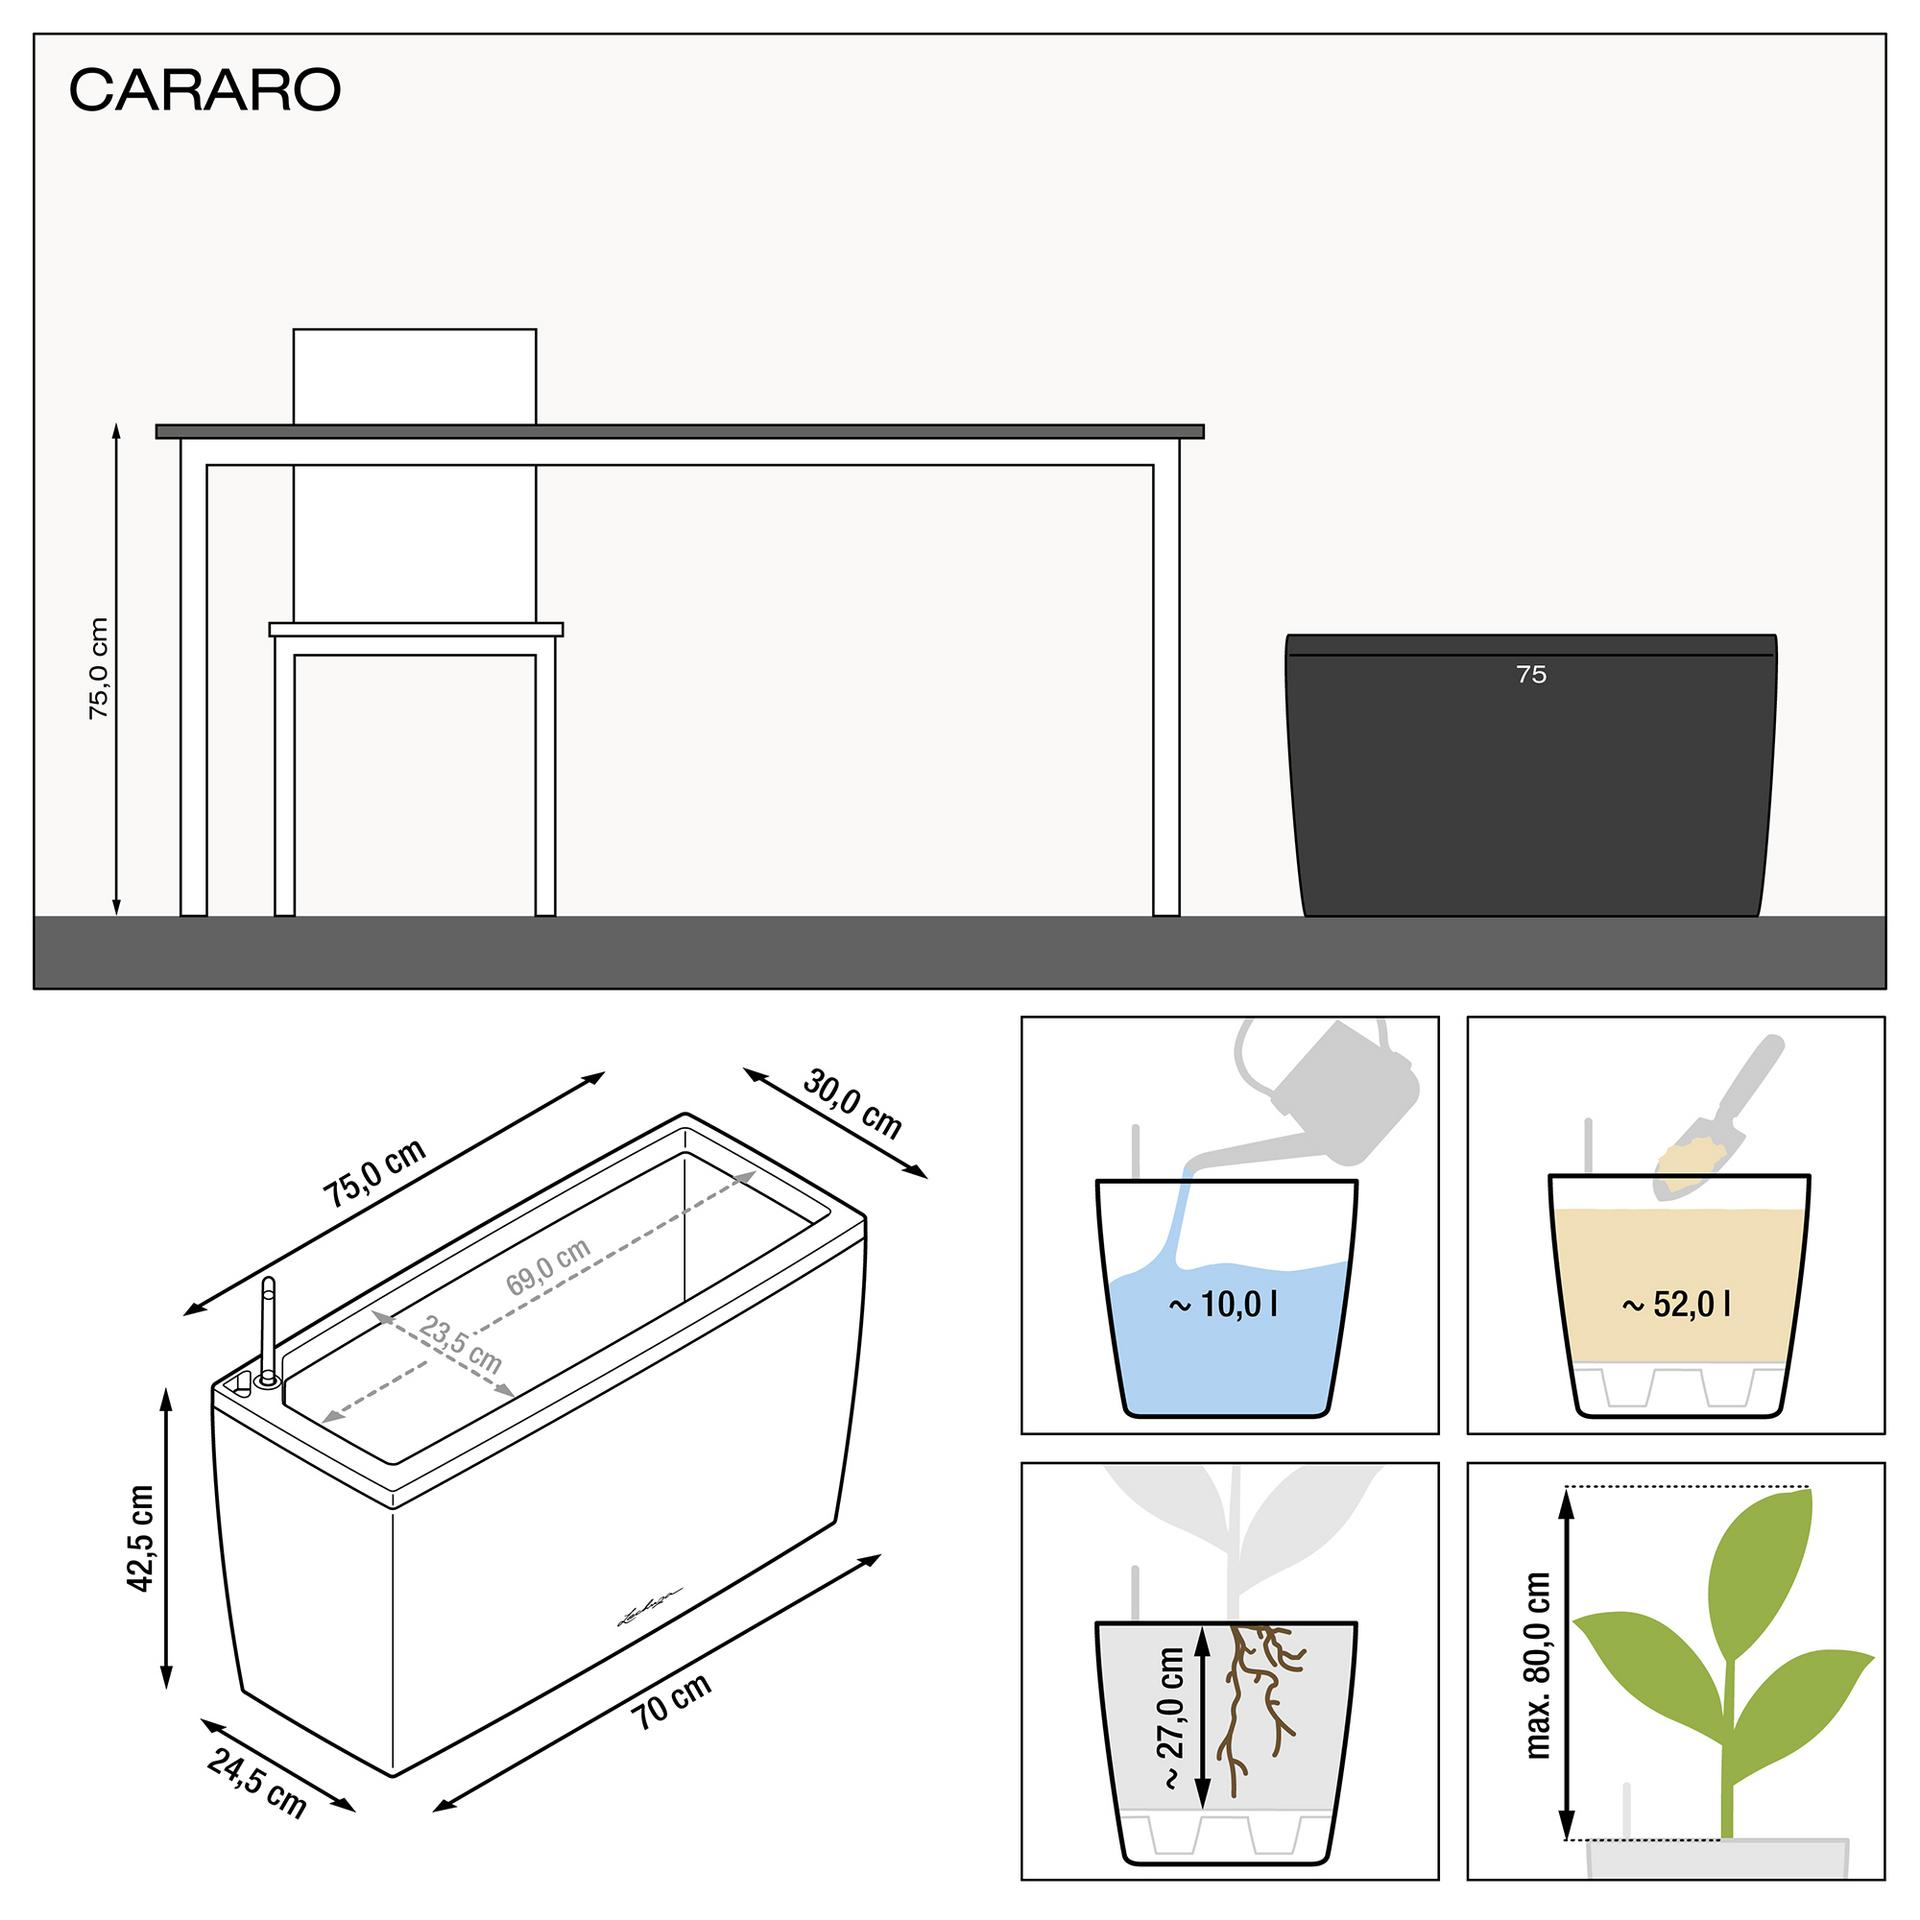 le_cararo_product_addi_nz